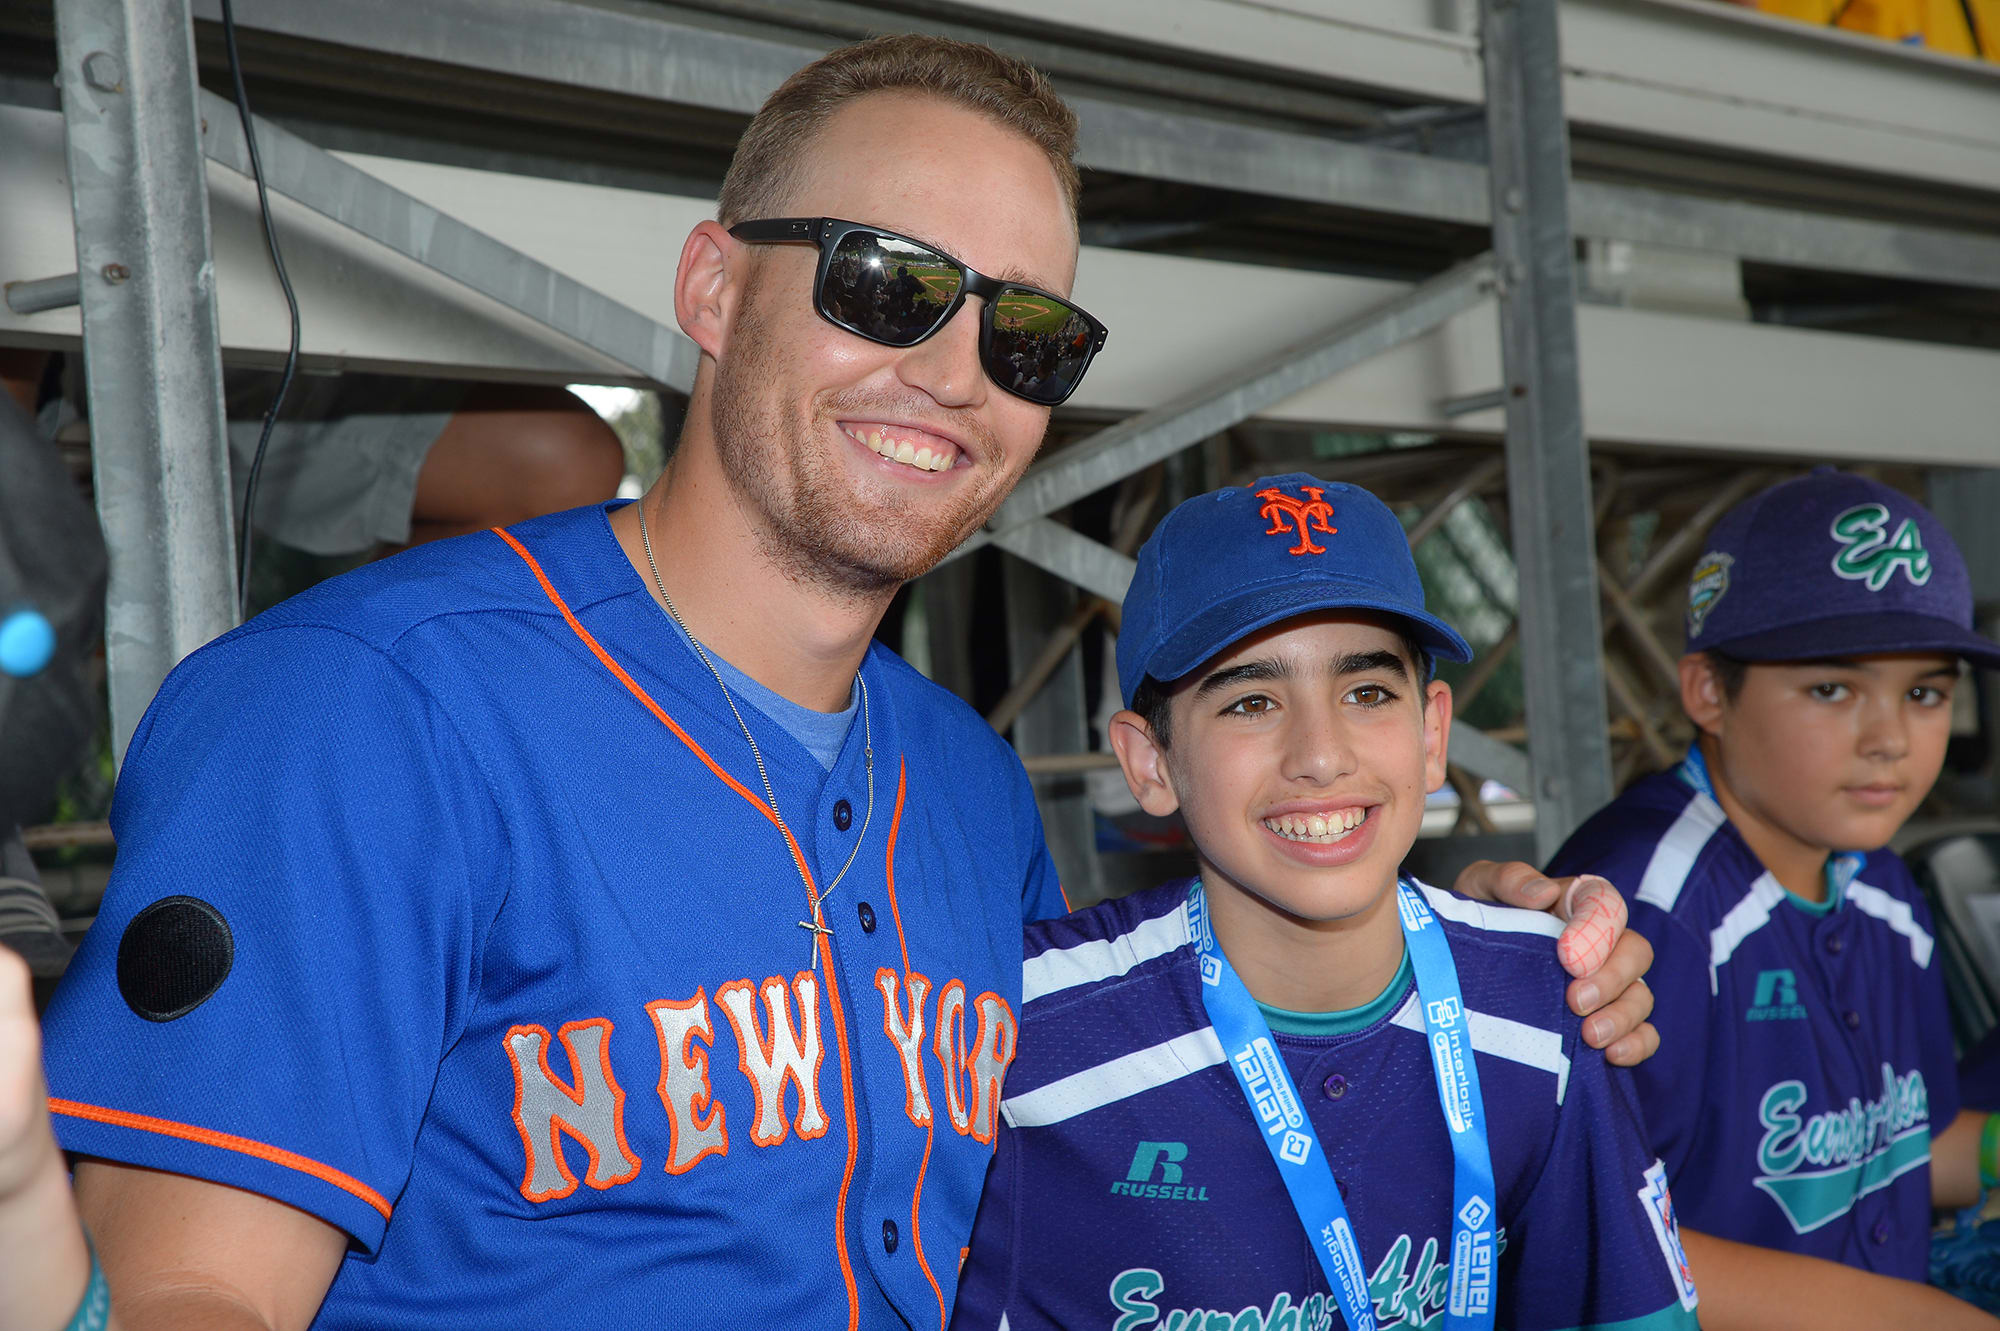 new york player getting pic with ll player